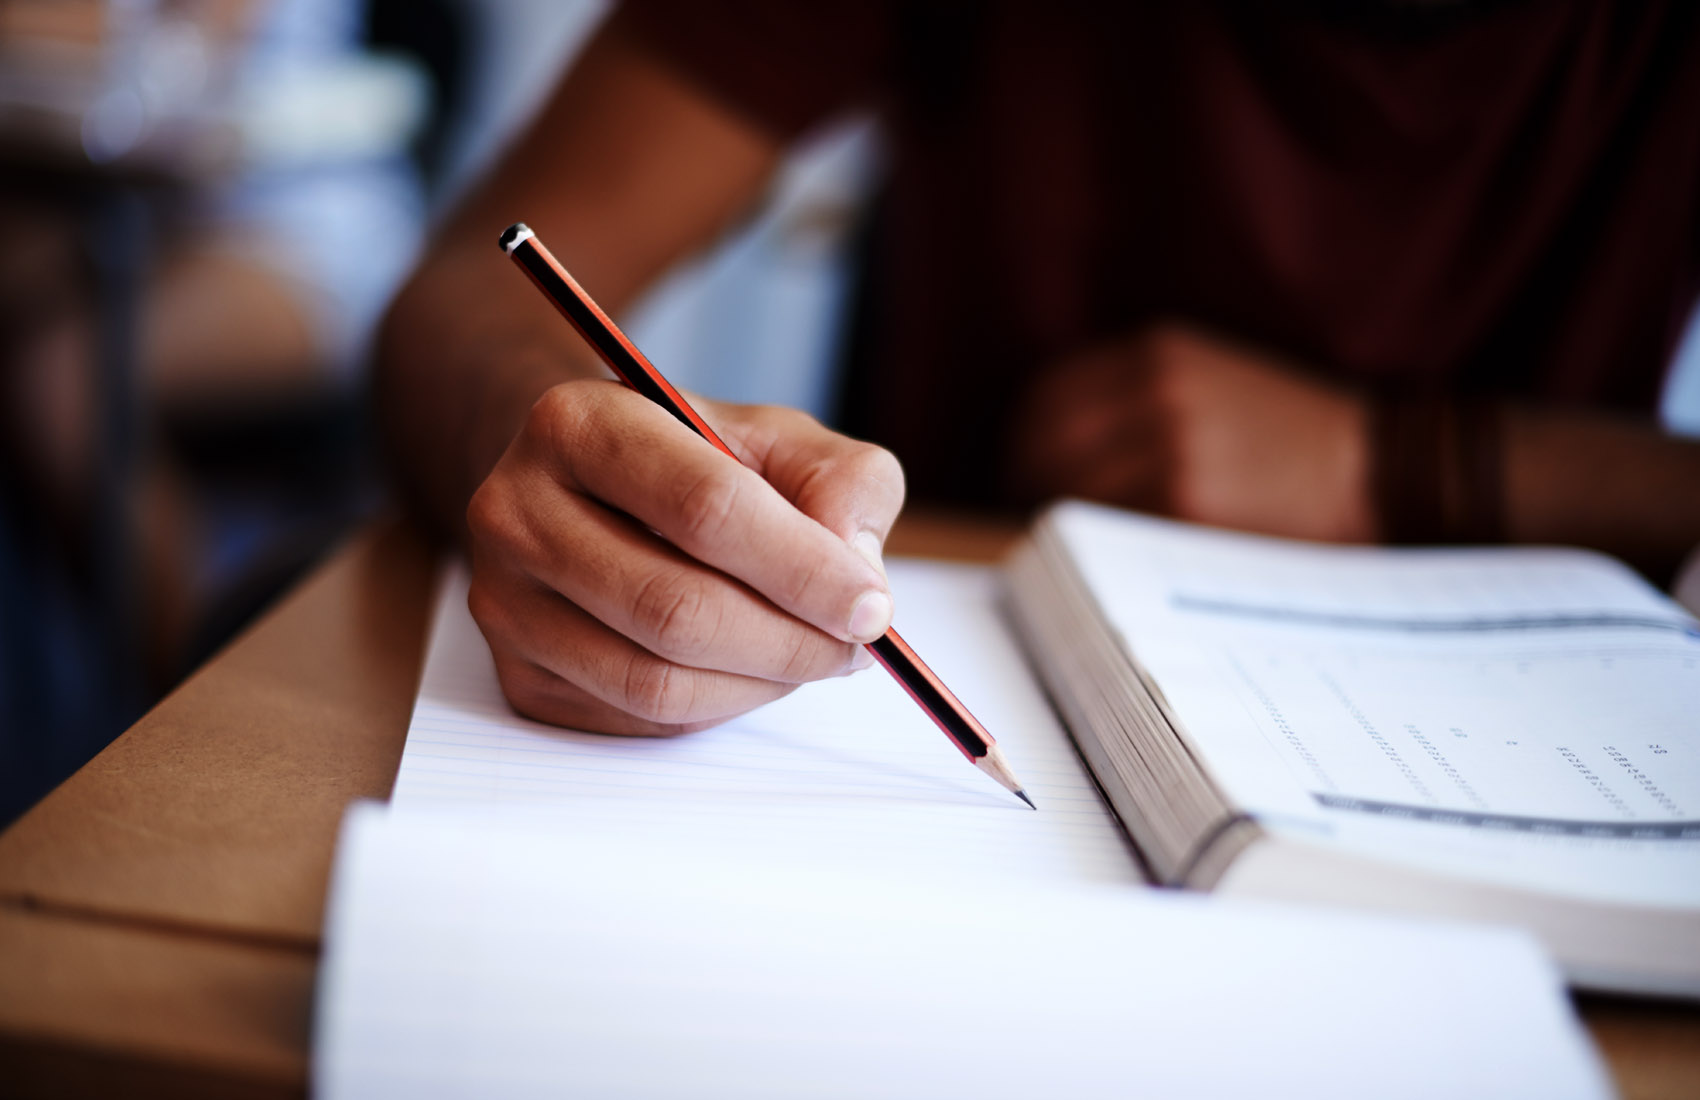 Image of student's hand holding a pencil and marking a test paper